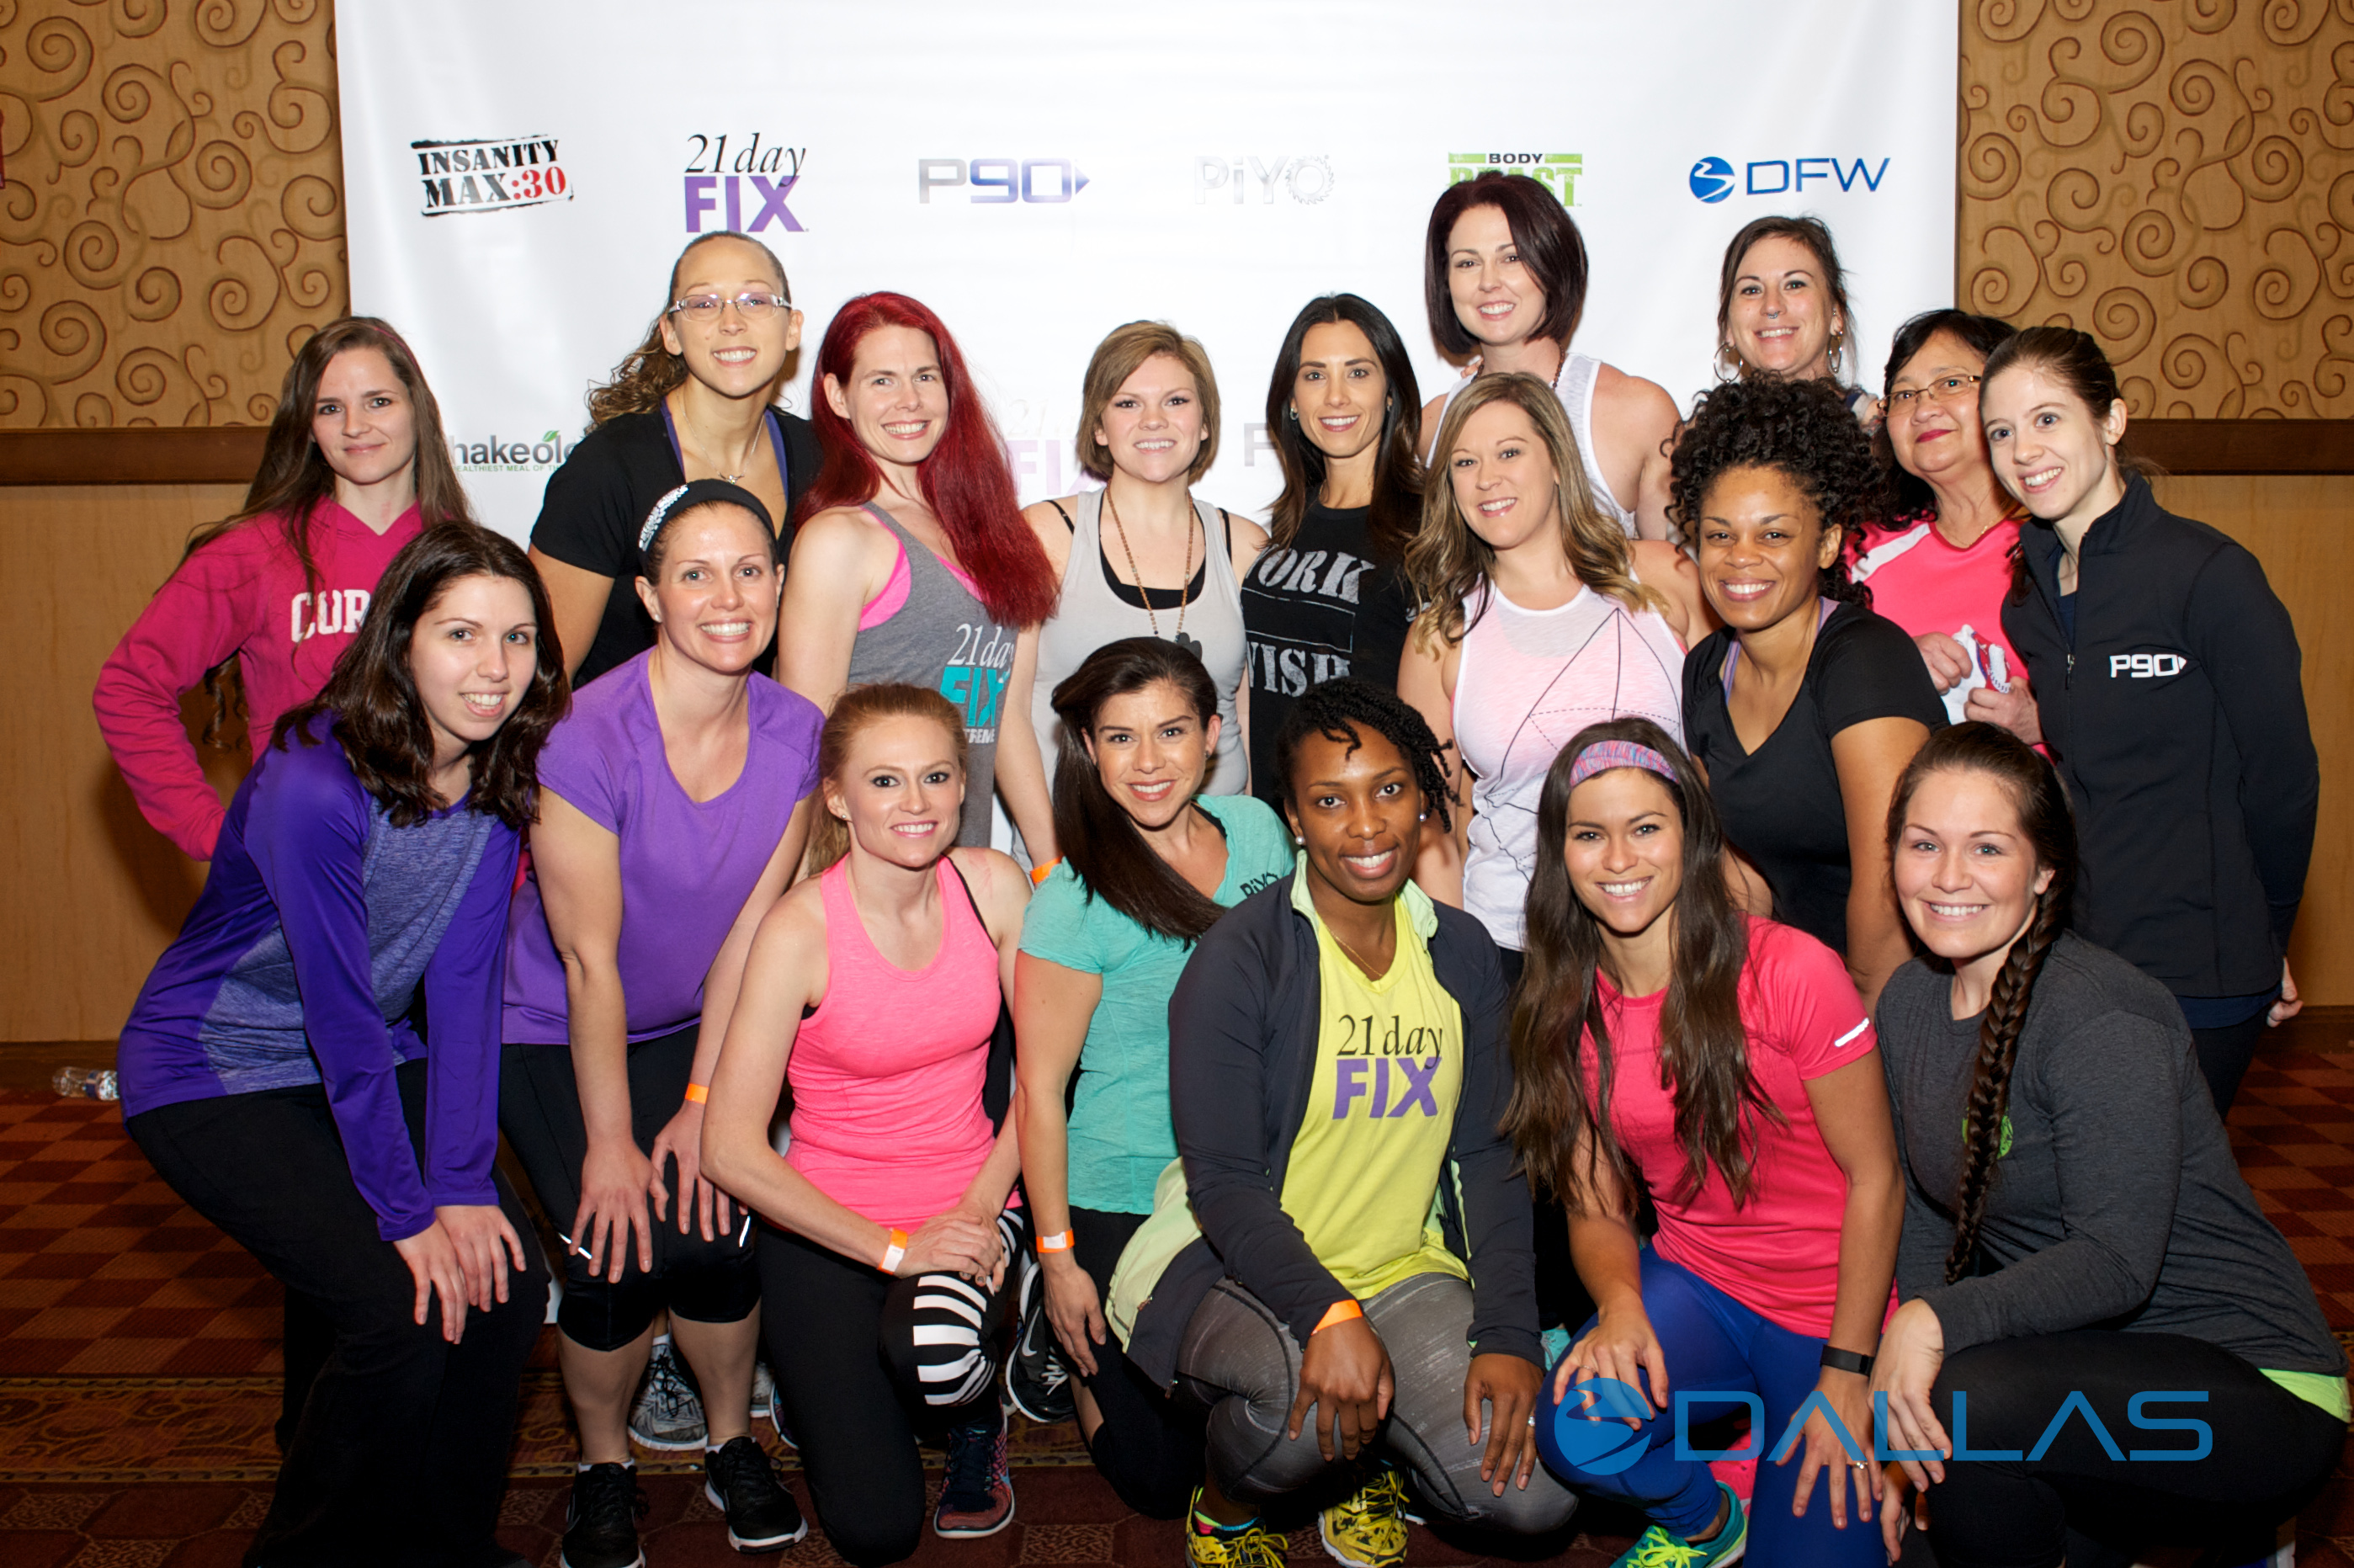 21 Day Fix Hammer and Chisel Autumn Calabrese Dallas Super Sunday